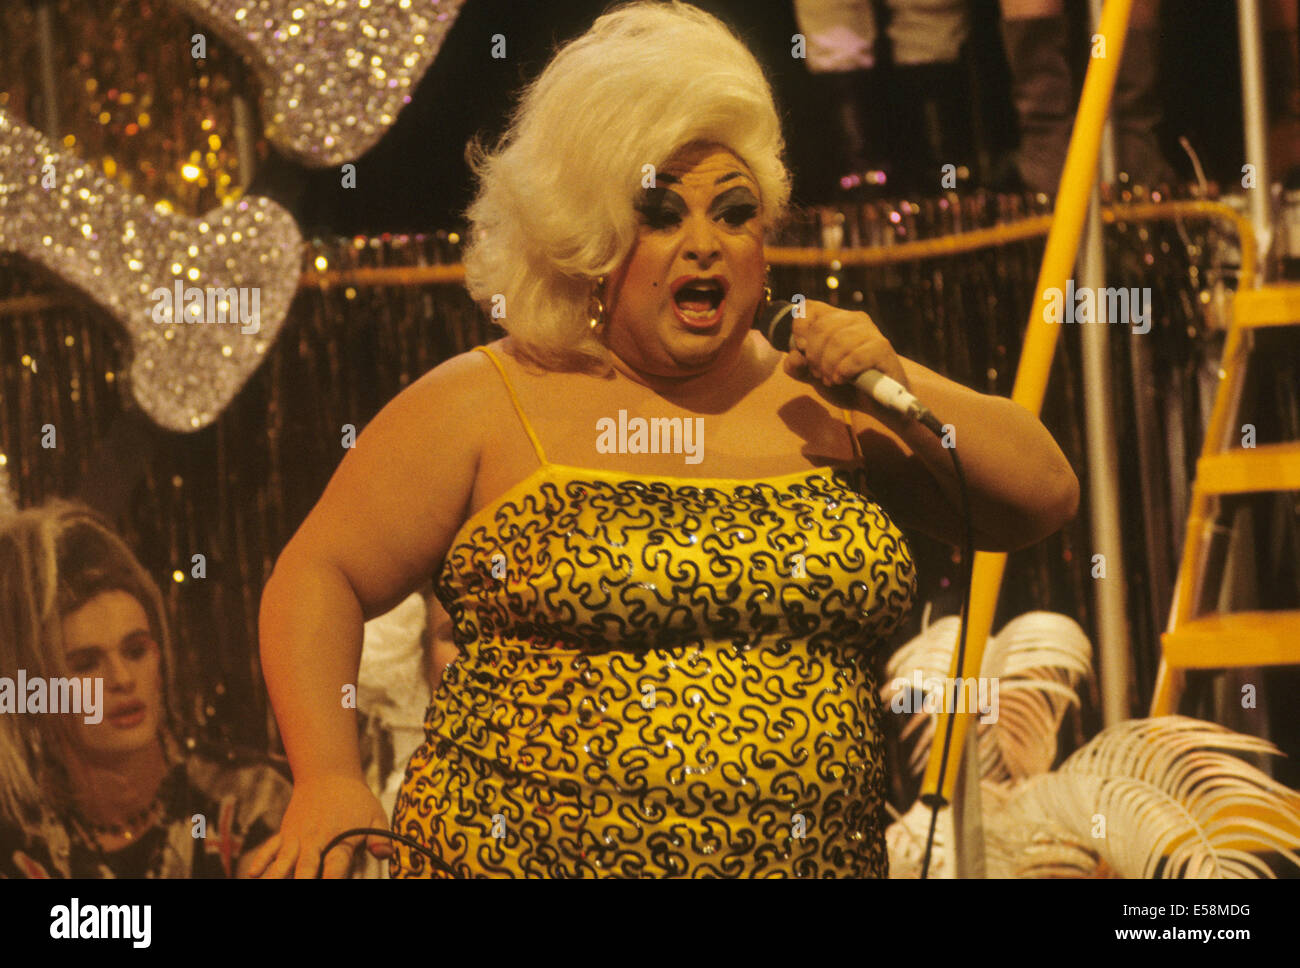 DIVINE (Harris Milstead) 1945-1988 US entertainer about 1984 - Stock Image